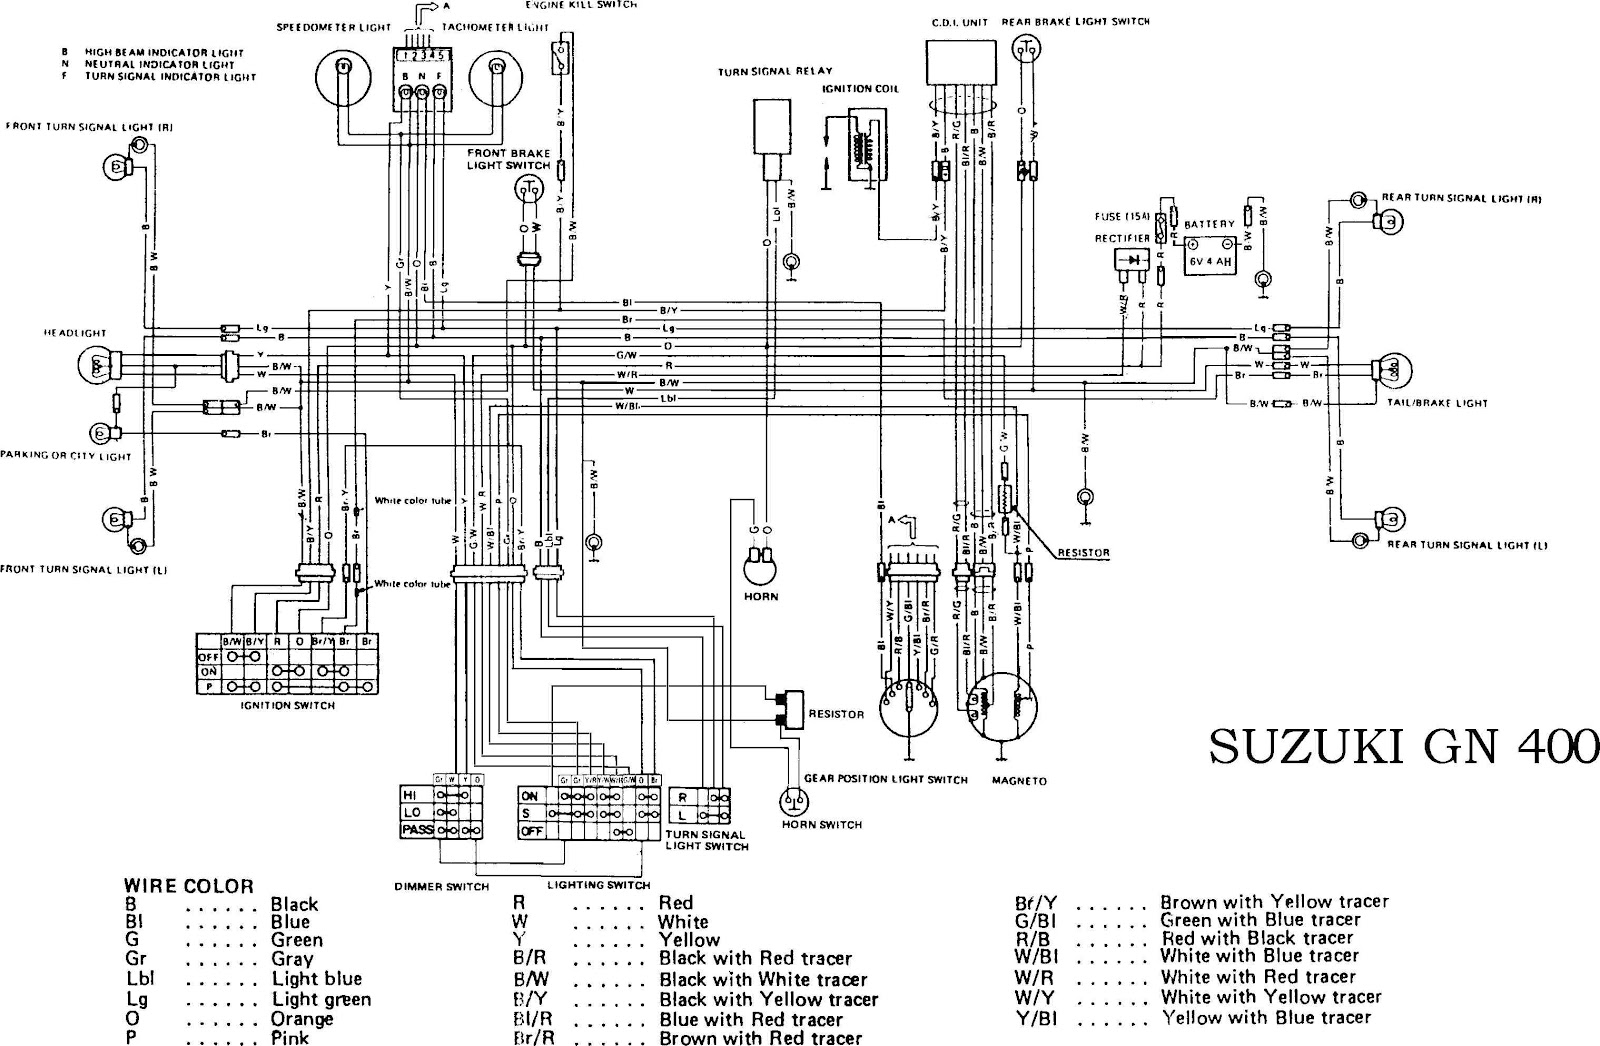 2004 gsxr 600 headlight wiring diagram rj45 suzuki gsx r600 srad motorcycle 1998 complete electrical